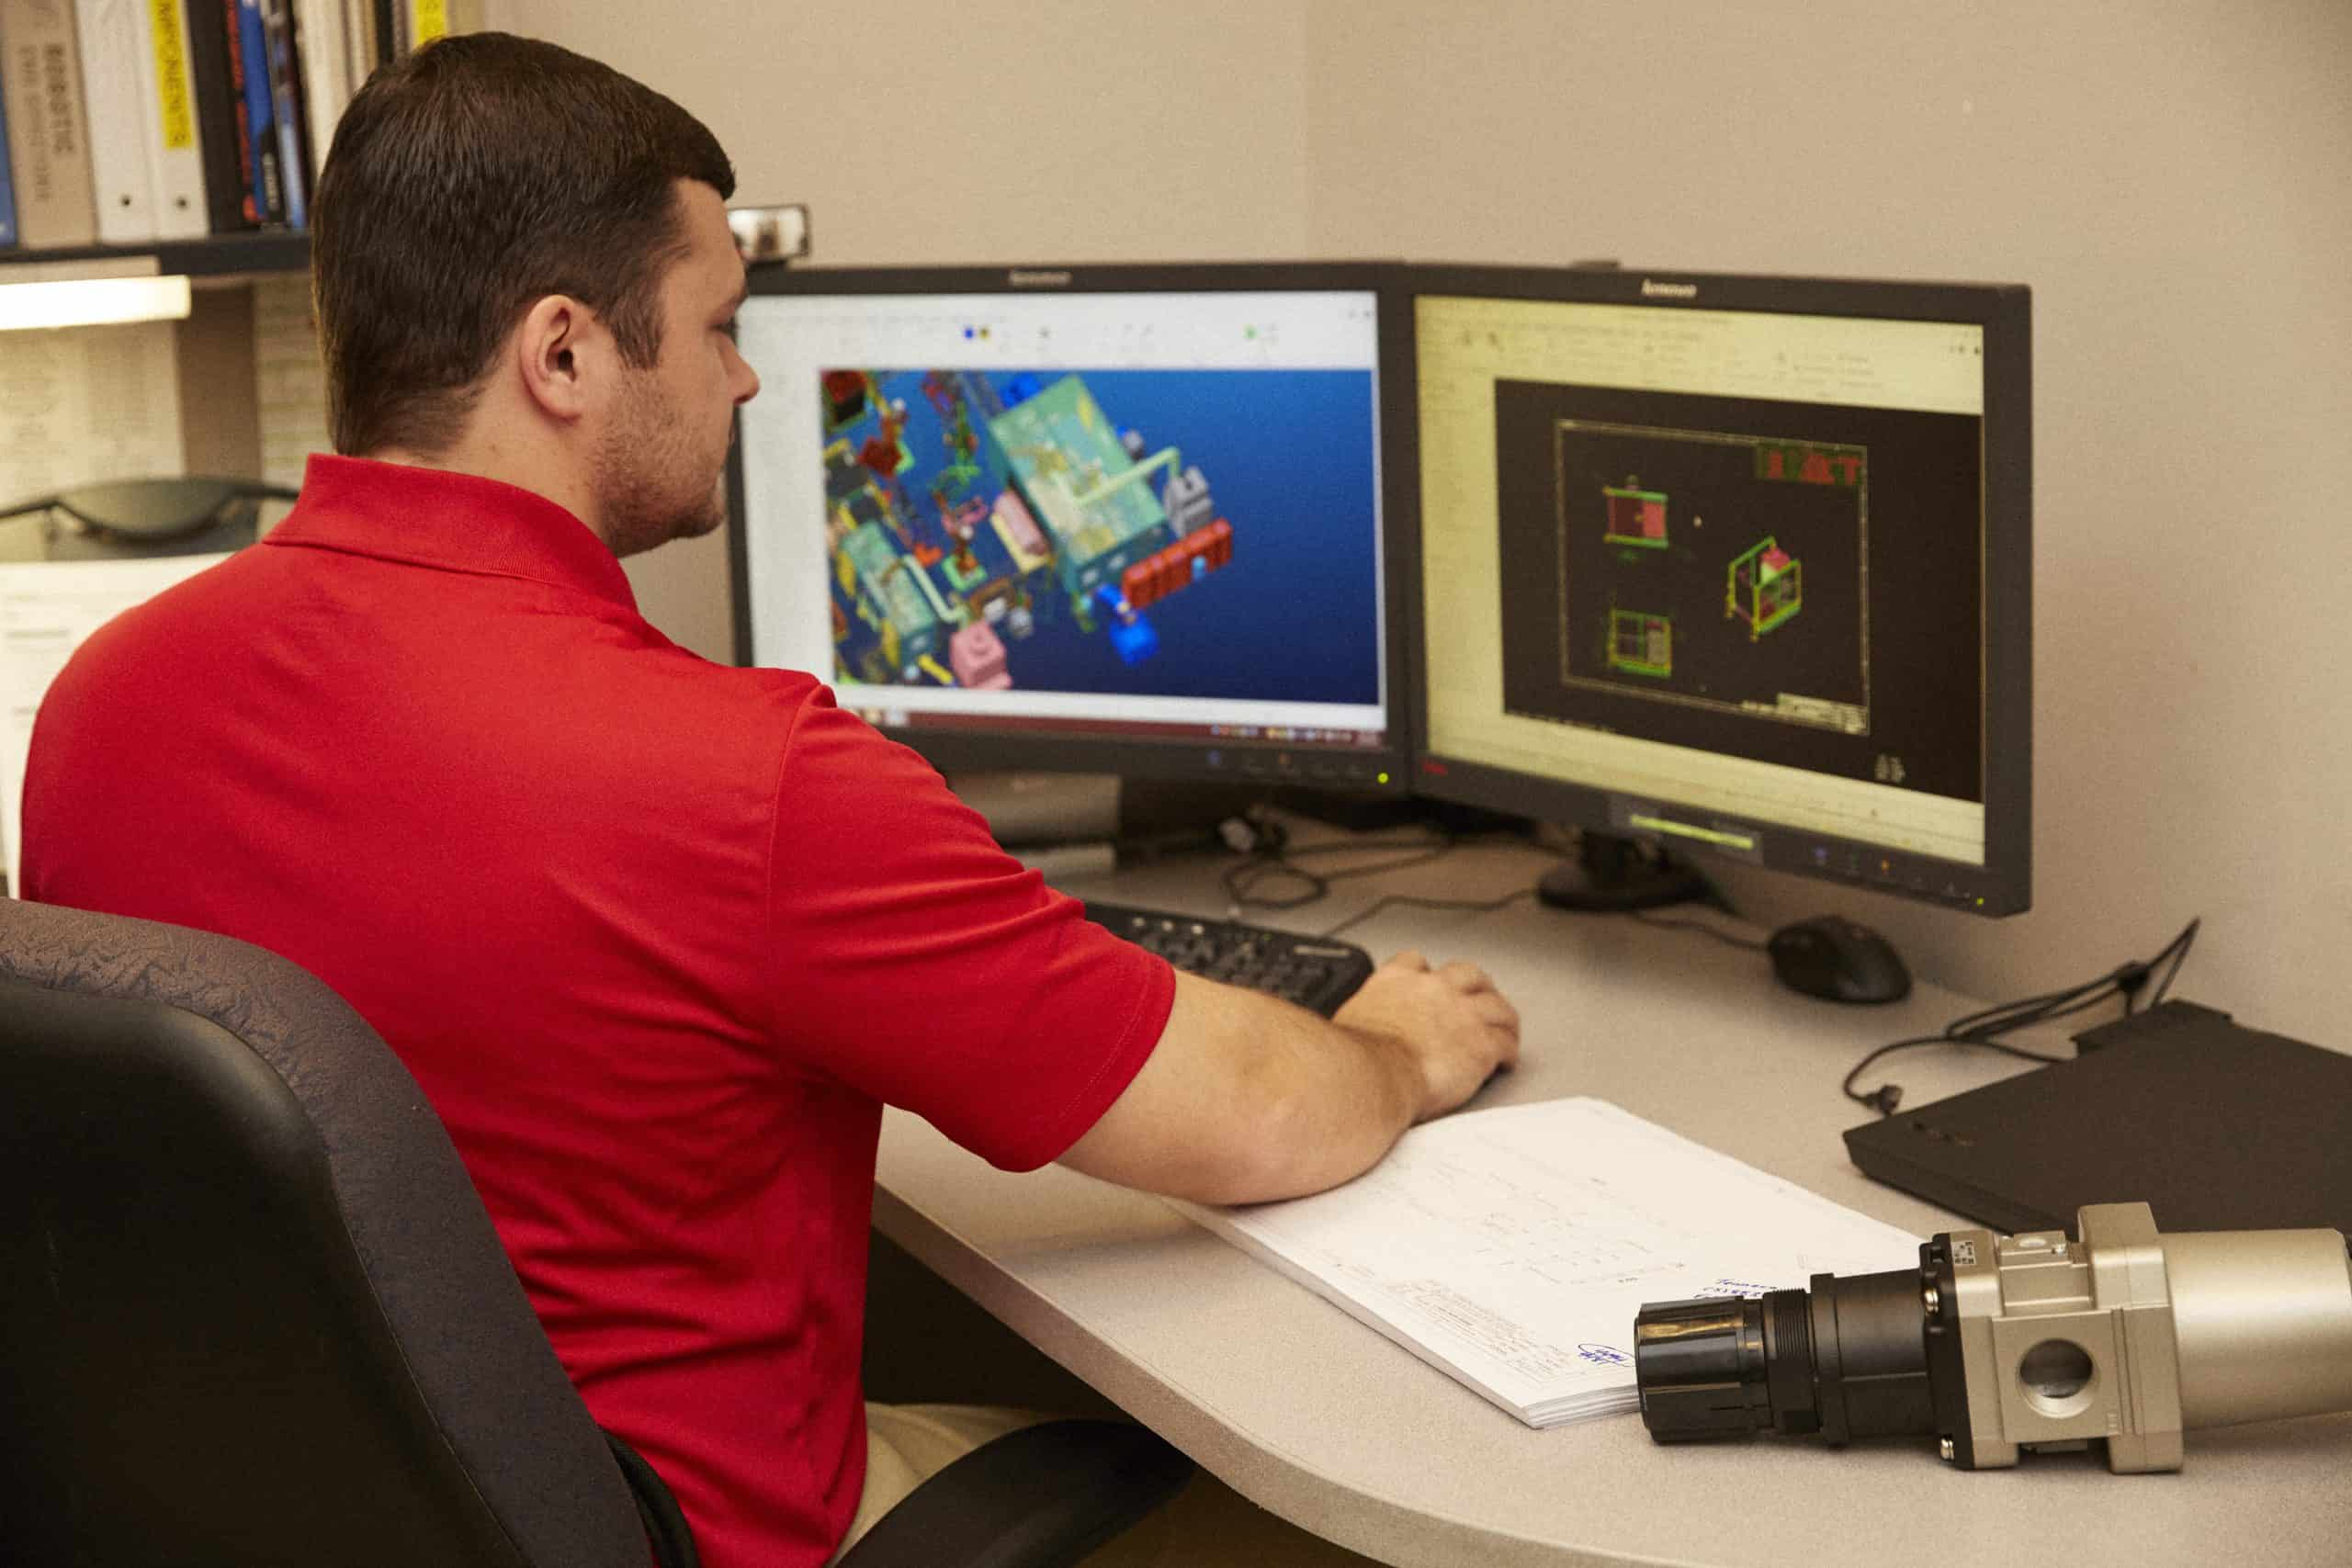 Engineer using CAD modeling software